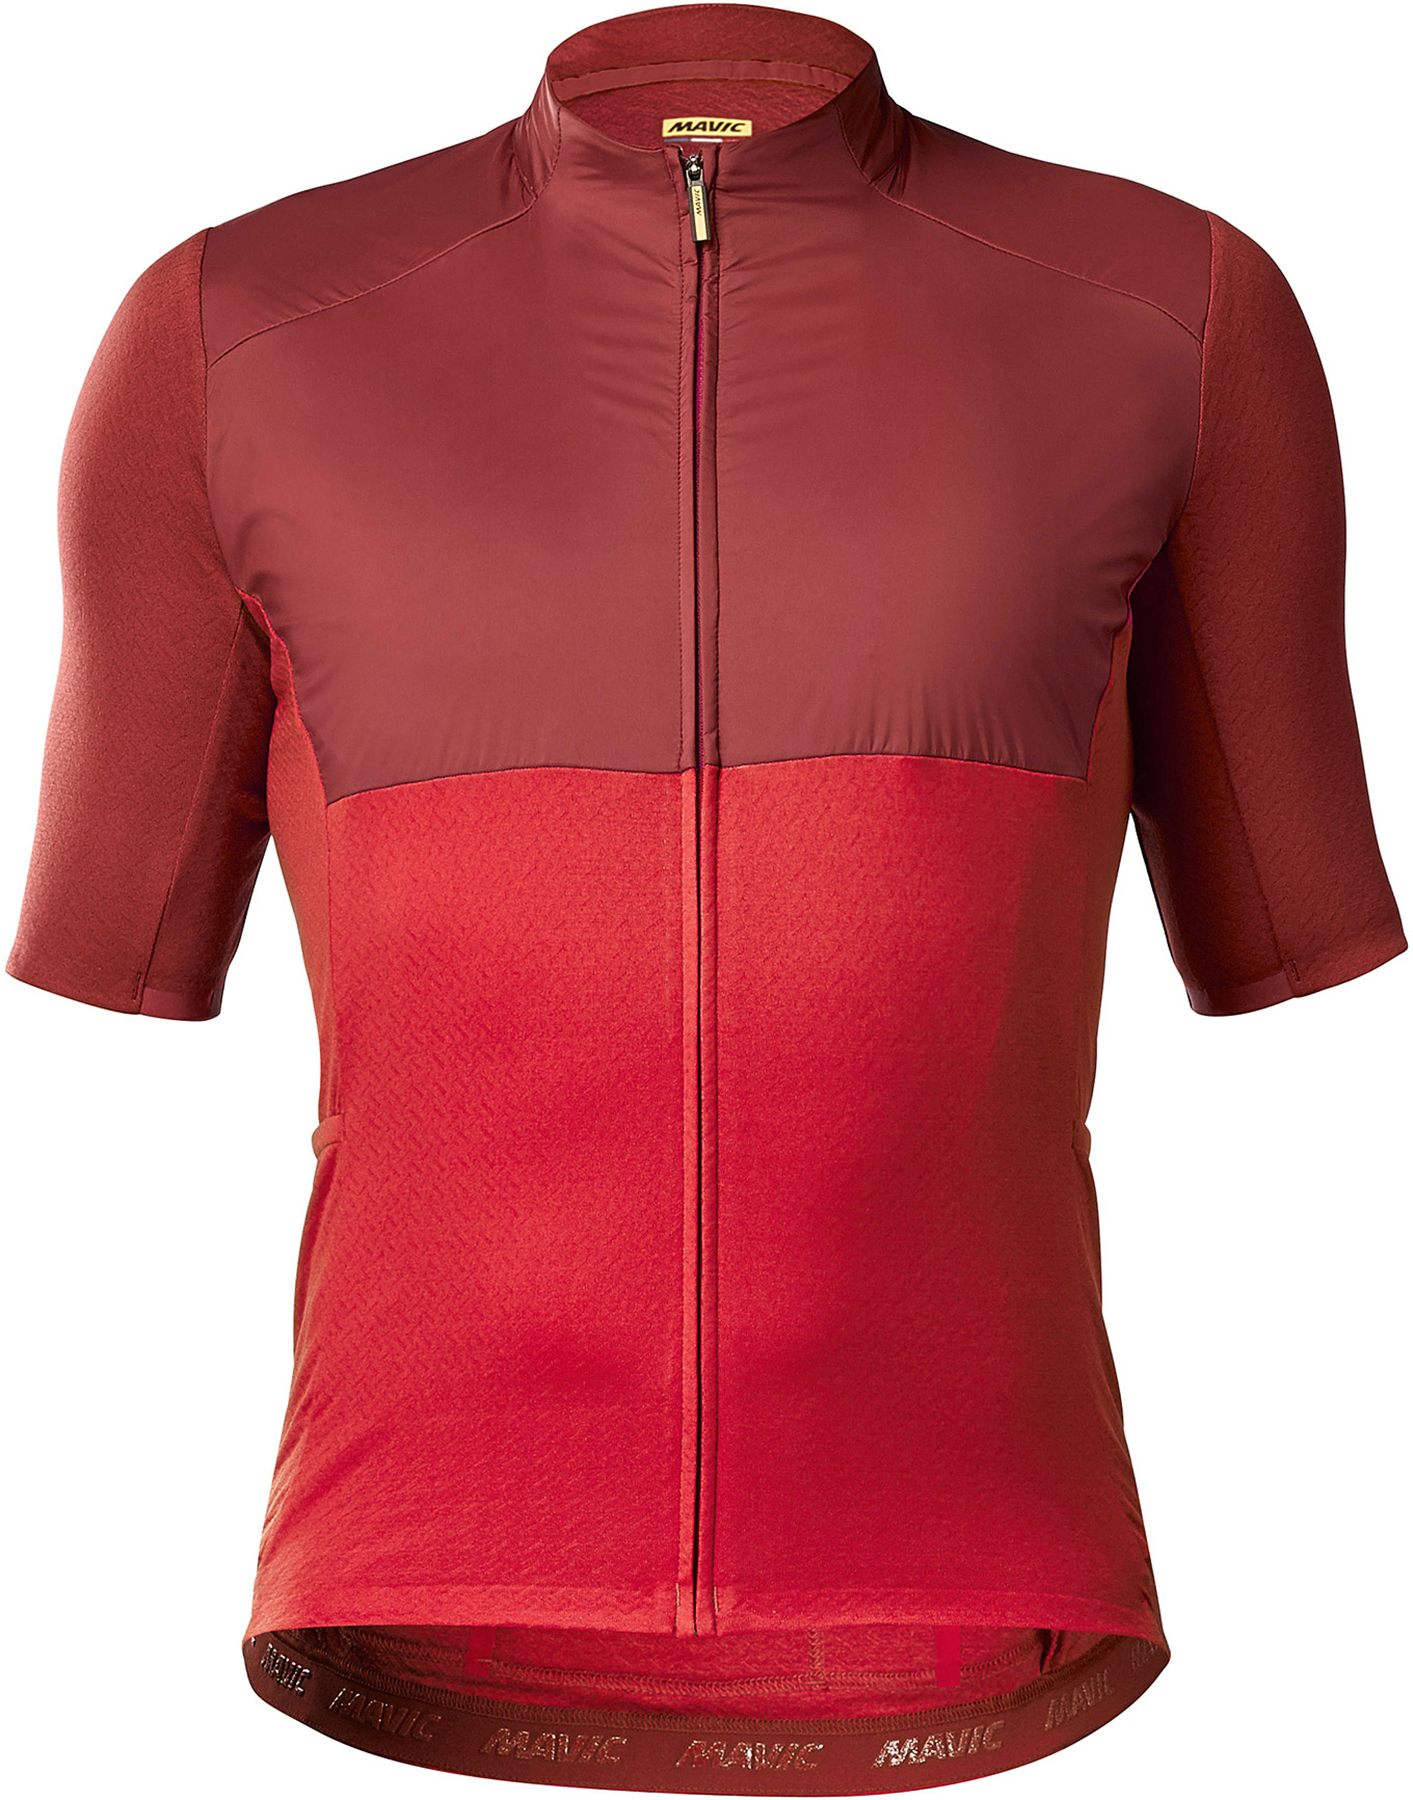 Mavic Allroad Wind Jersey | Jerseys